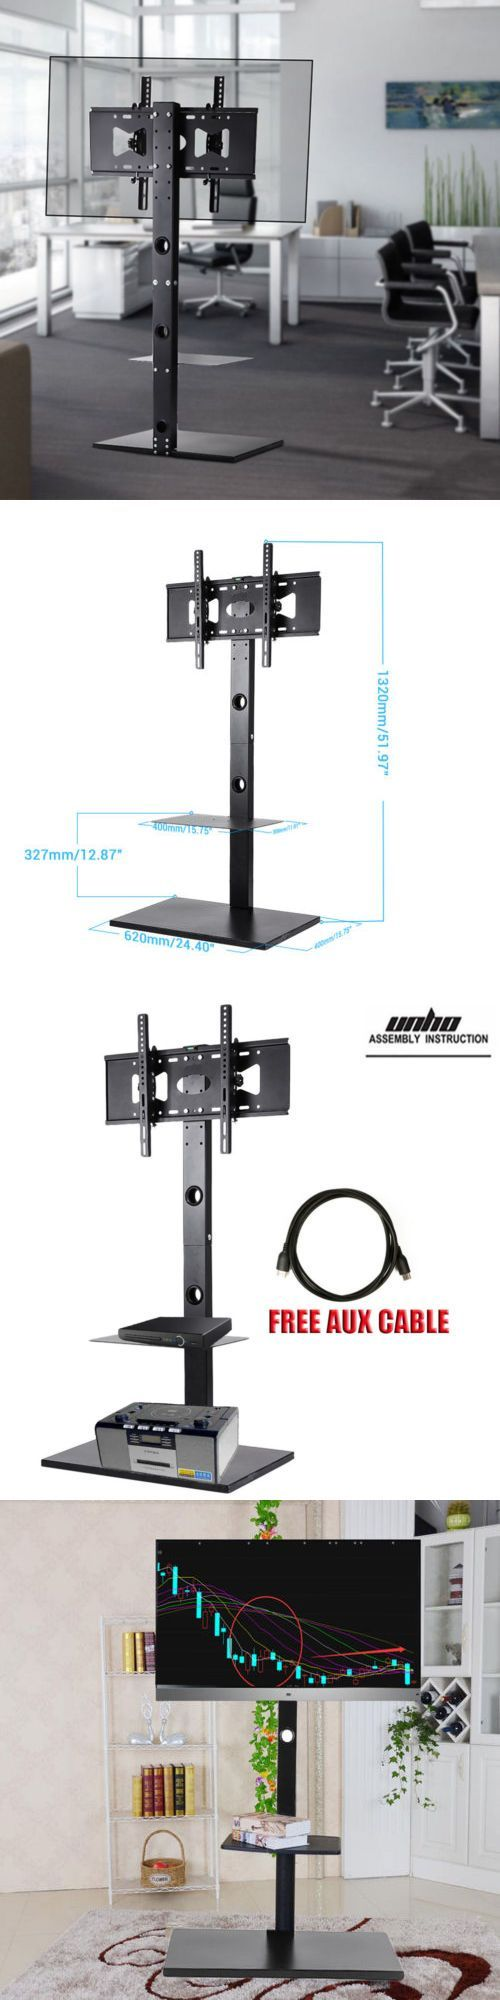 TV Mounts and Brackets: Heavy Duty Swivel Floor Stand Tv Mount And2 Shelves For 40 50 60 65 Height Adjust -> BUY IT NOW ONLY: $69.92 on eBay!